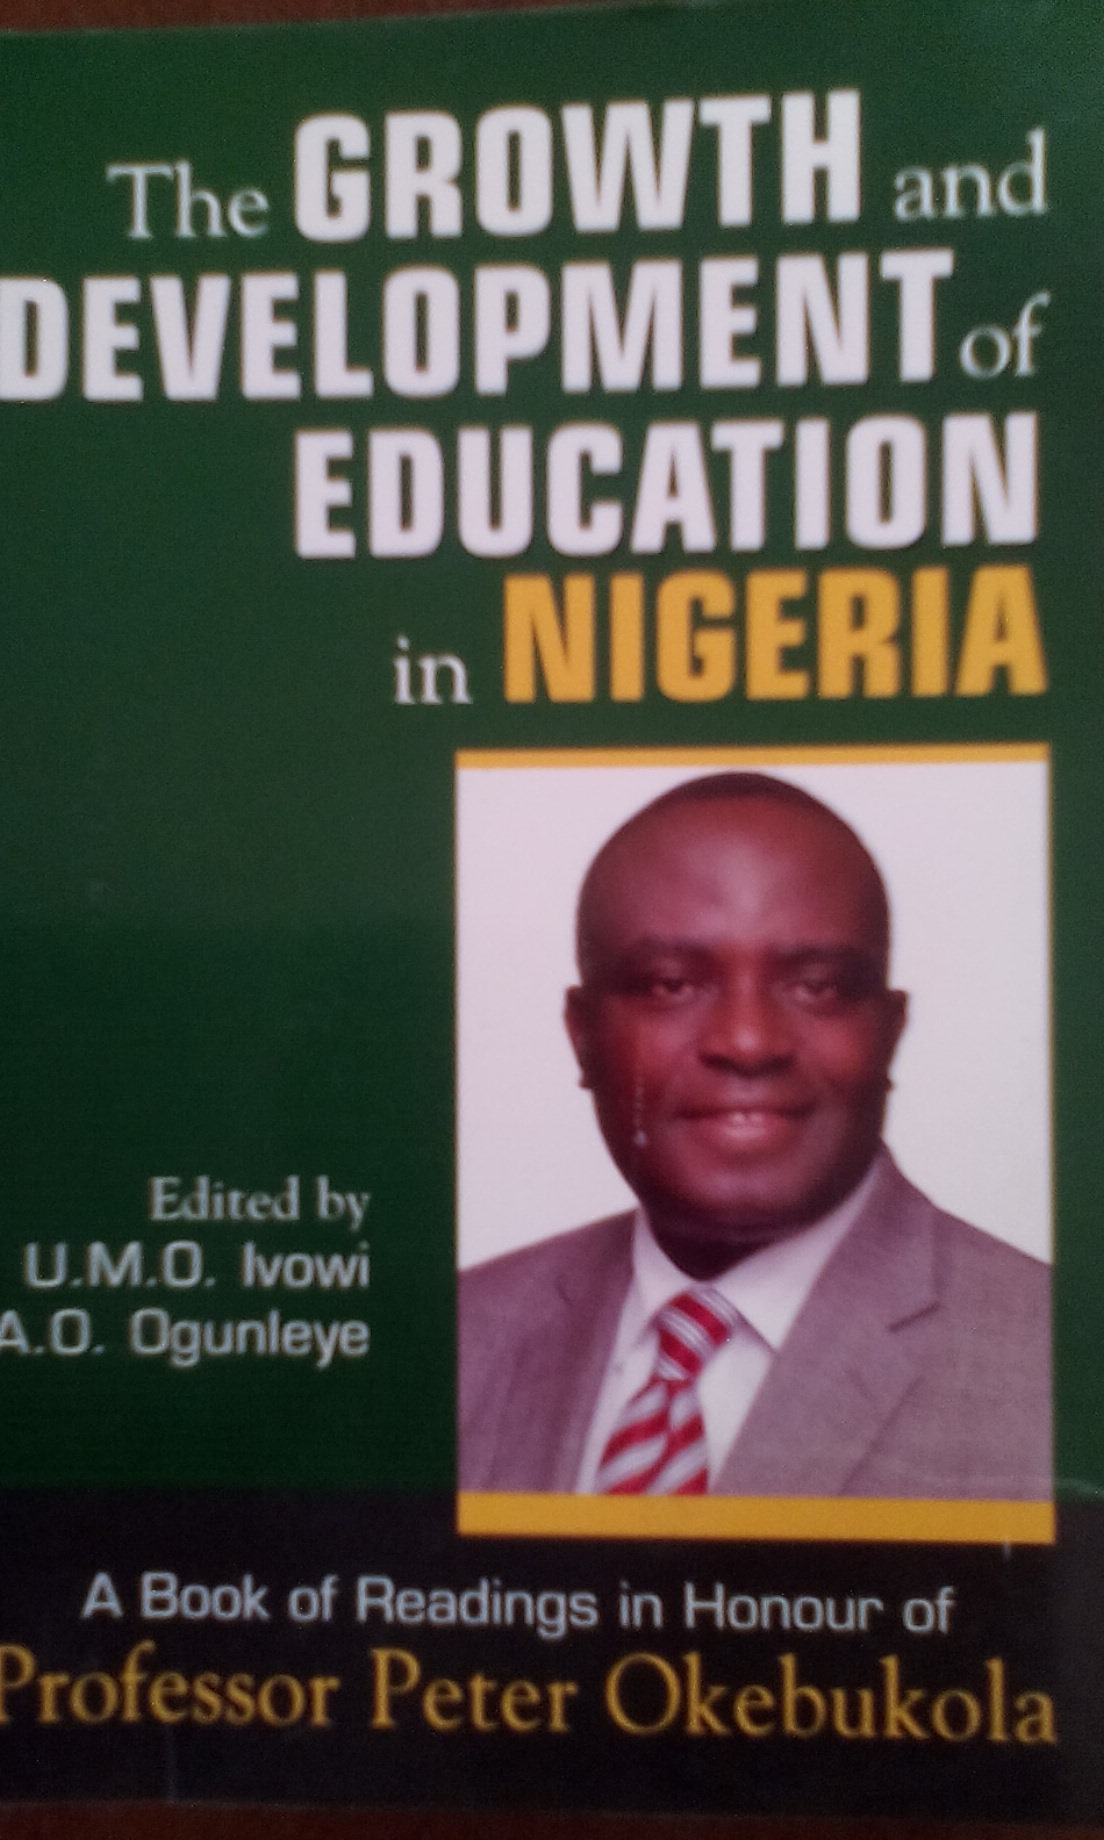 The GROWTH and DEVELOPMENT of EDUCATION in NIGERIA